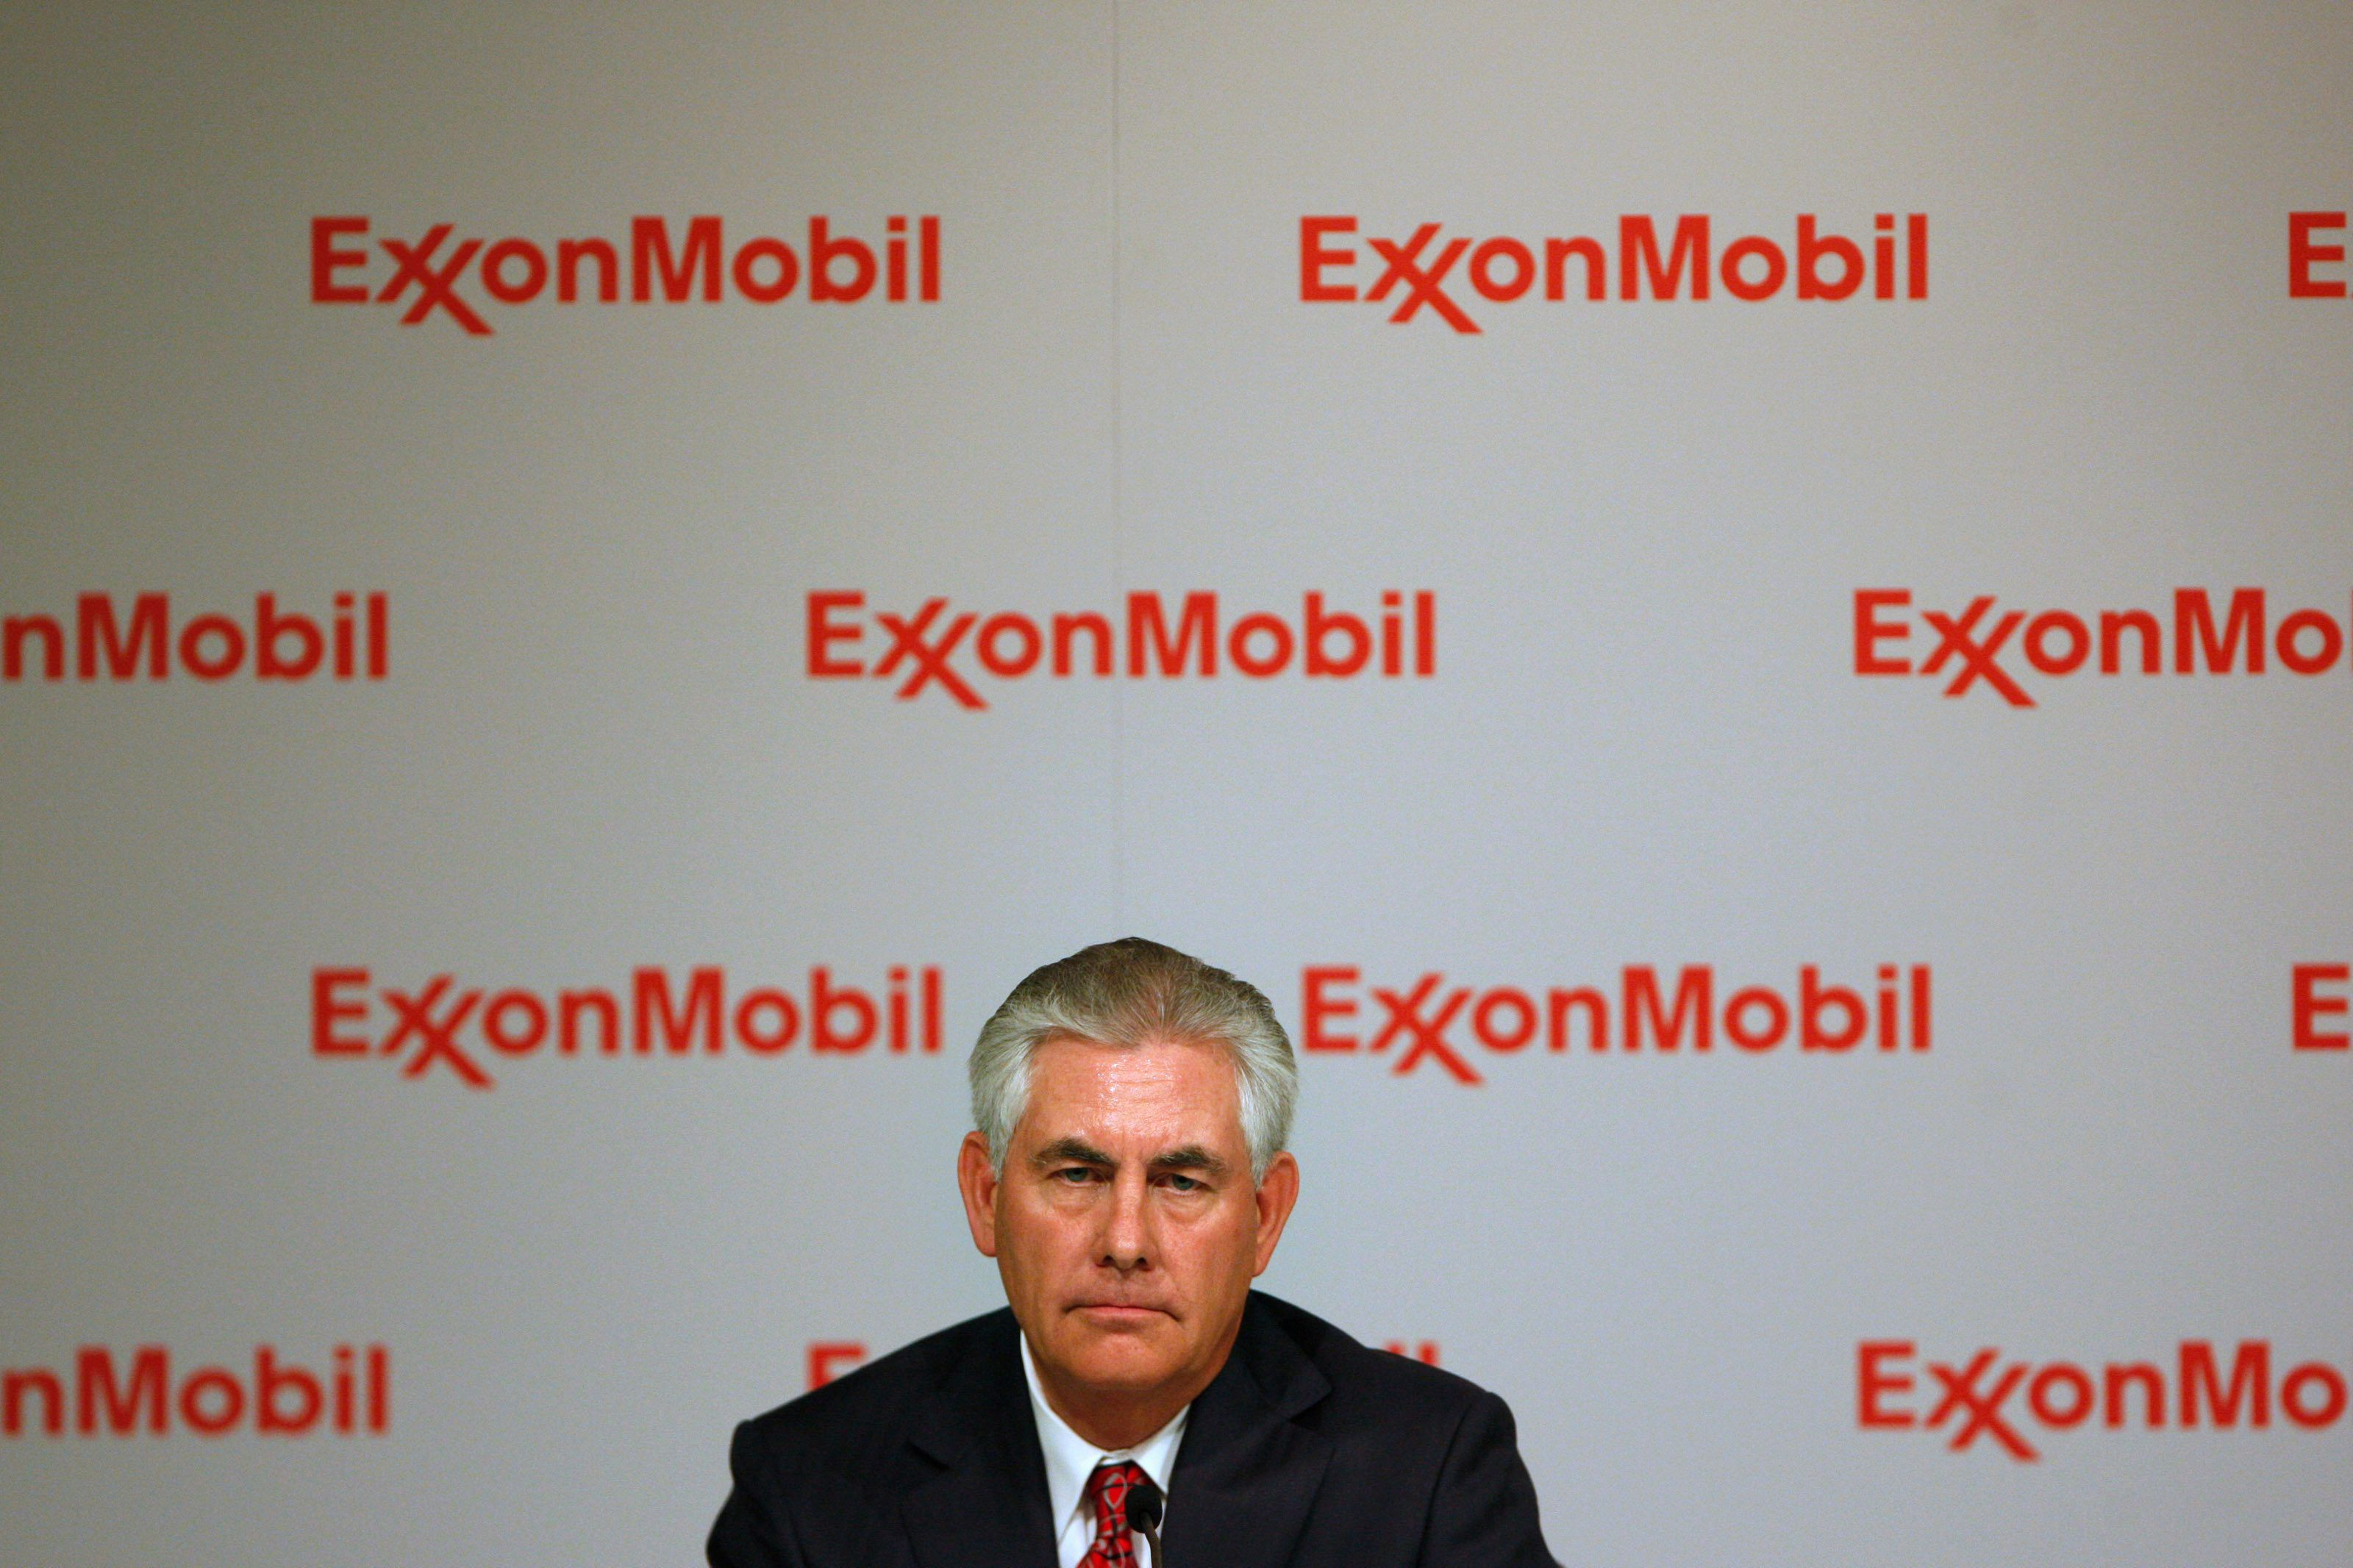 Rex Tillerson Supposedly Shifted Exxon Mobil's Climate Position. Except He Really